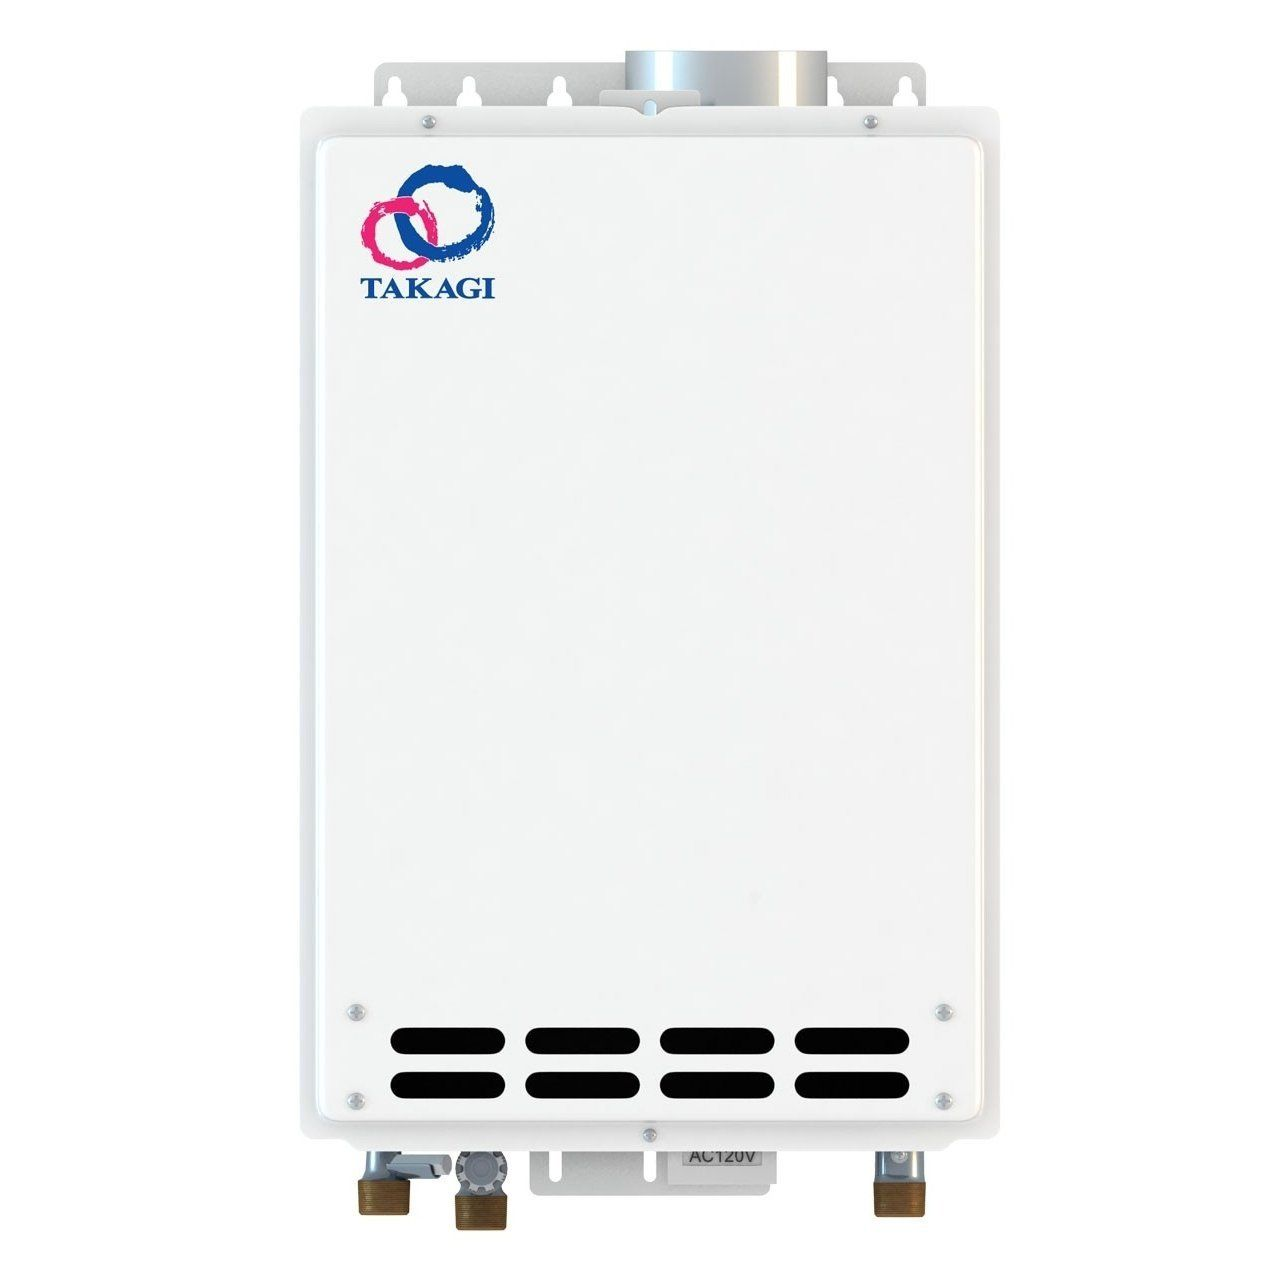 Pros and cons of gas tankless water heaters - Little Big Life Perfect Water Heater For Narrowboat Or Houseboat Propane Gas Tankless Water Heater